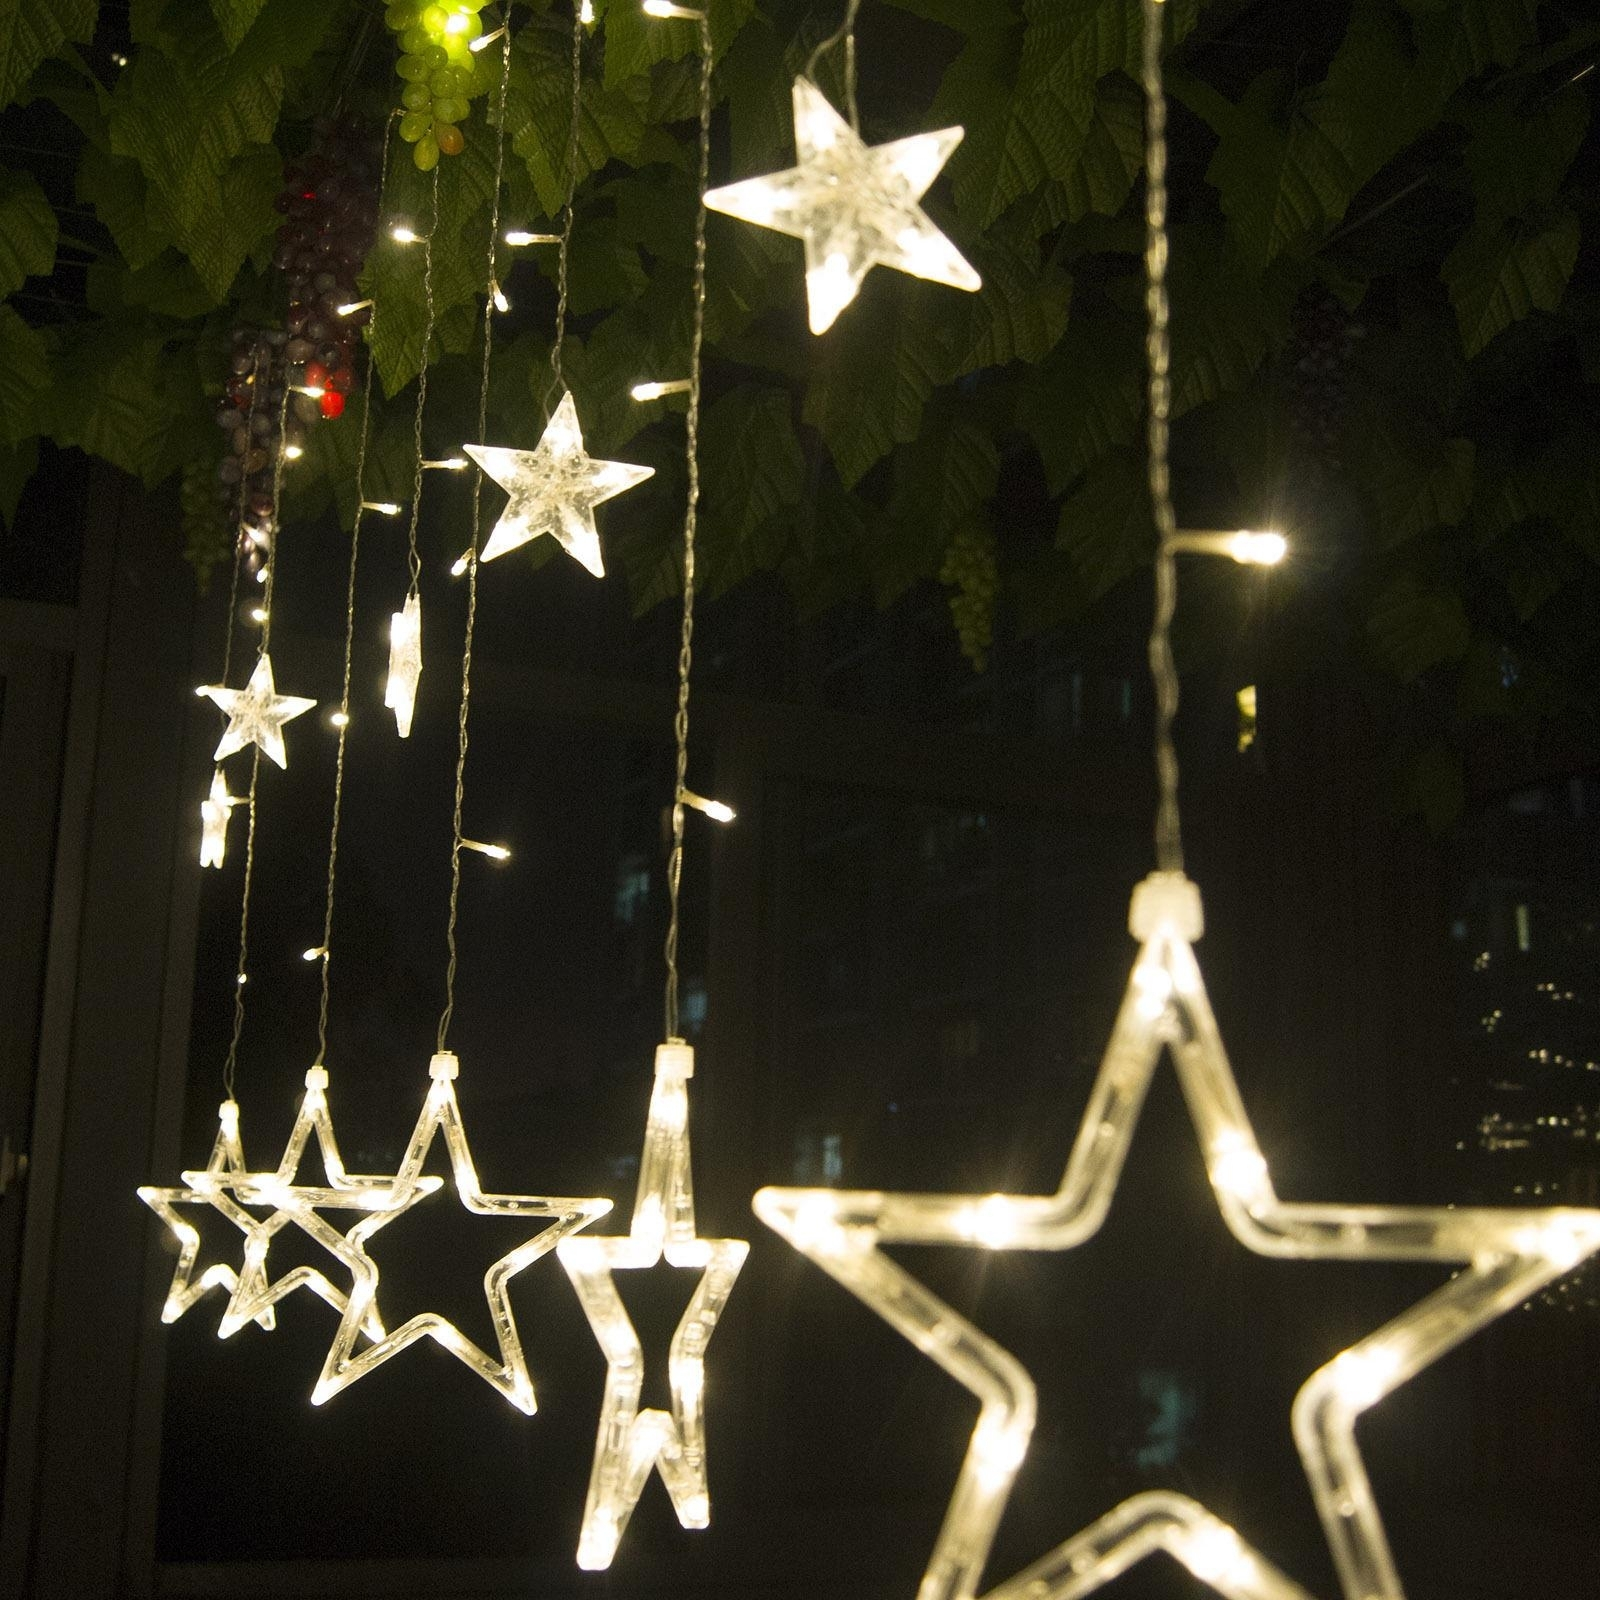 Popular Photo of Outdoor Hanging Star Lights